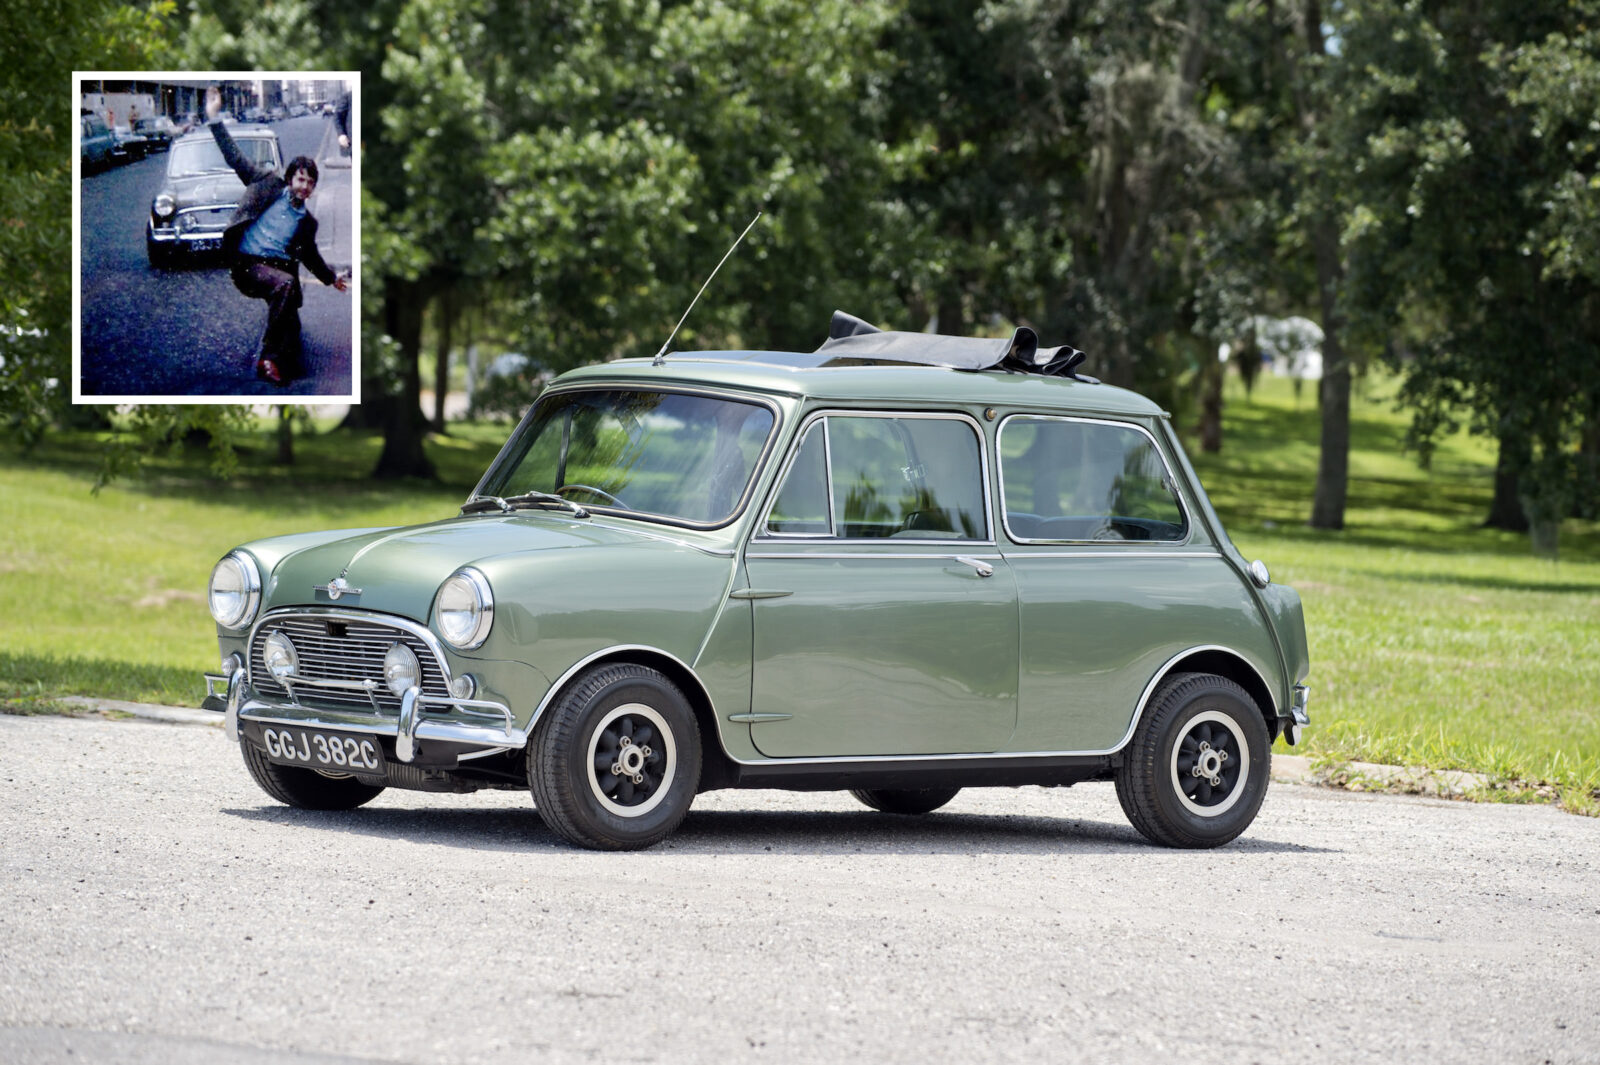 Paul McCartney Mini Cooper S Main